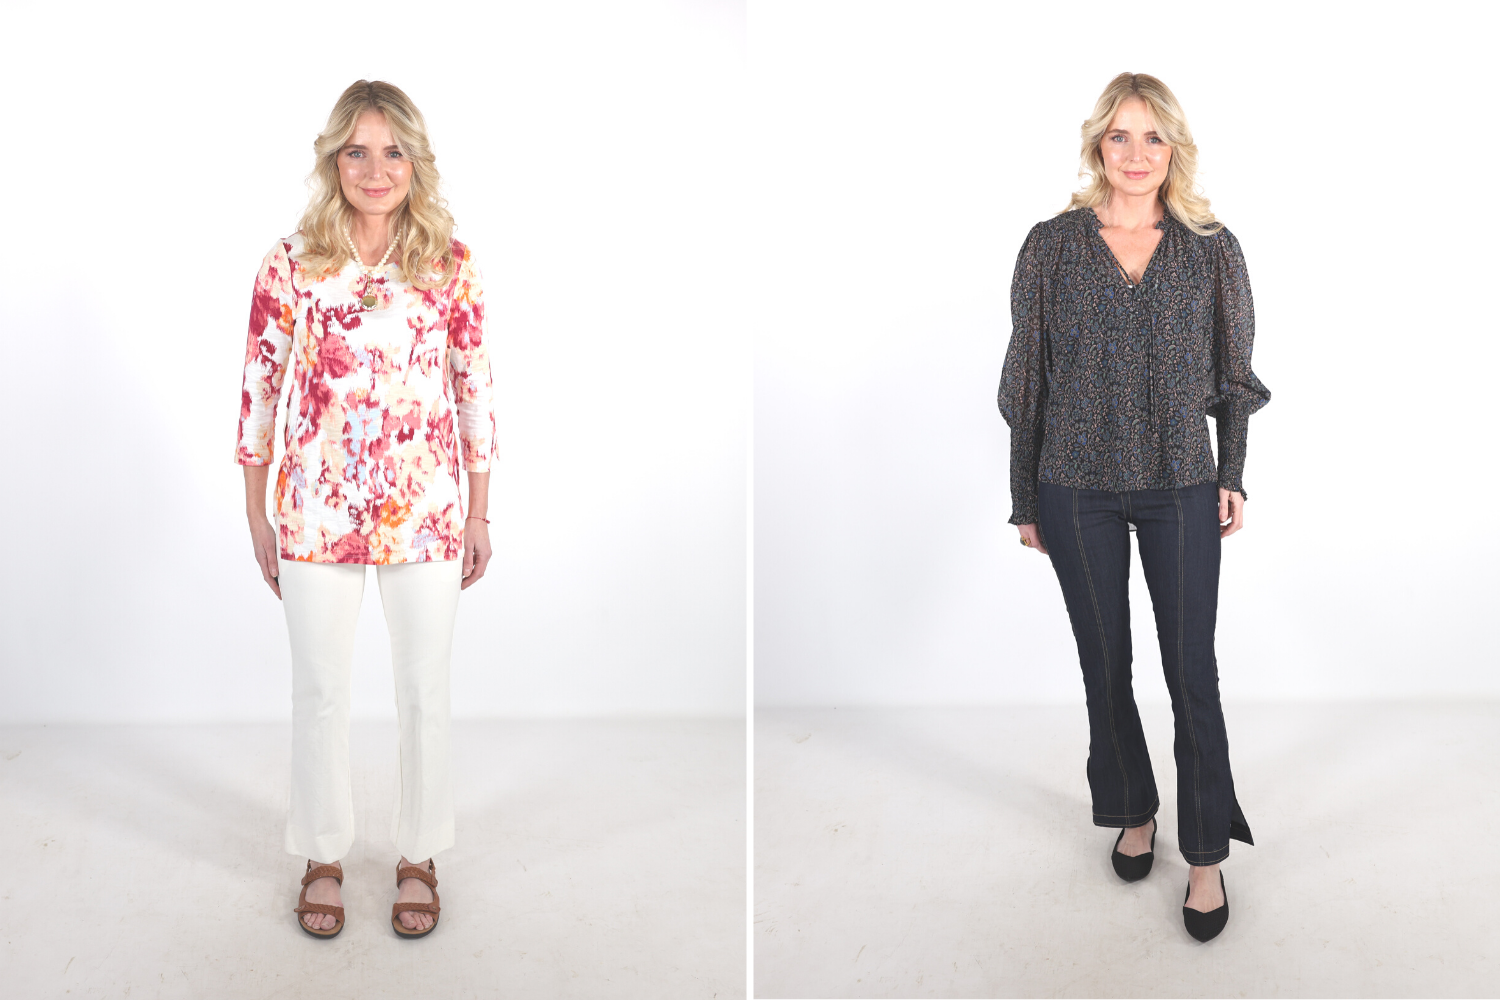 How to look younger, Erin Busbee in a before and after picture wearing a floral tee, white pants, and old lady sandals on the left and a Veronica Beard floral blouse with dark wash flare jeans and Rothy's flats on the right